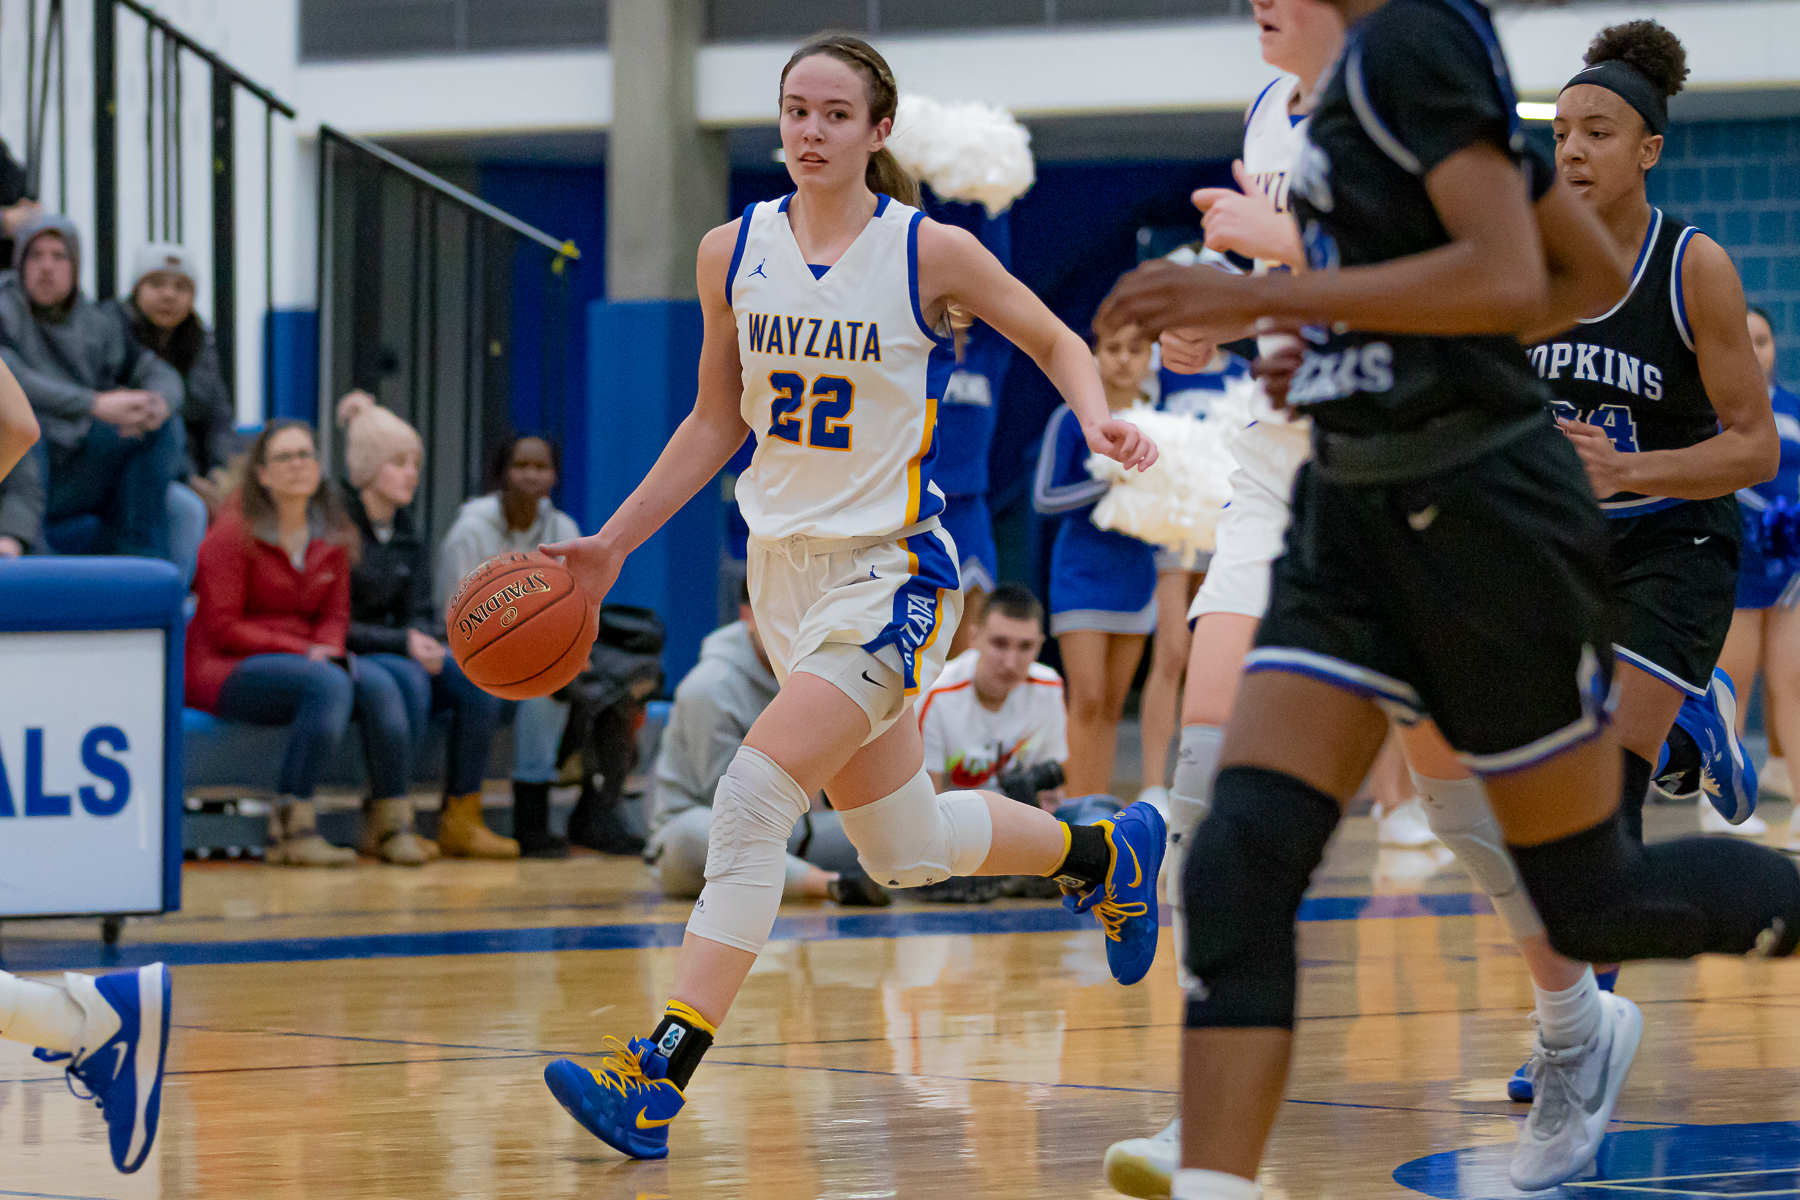 Wayzata junior forward Jenna Johnson (22) brings the ball up the court against Hopkins. Johnson led her team with 28 points but the Trojans fell to the Royals 87-77 on Tuesday night at the Lindbergh Center. Photo by Gary Mukai, SportsEngine